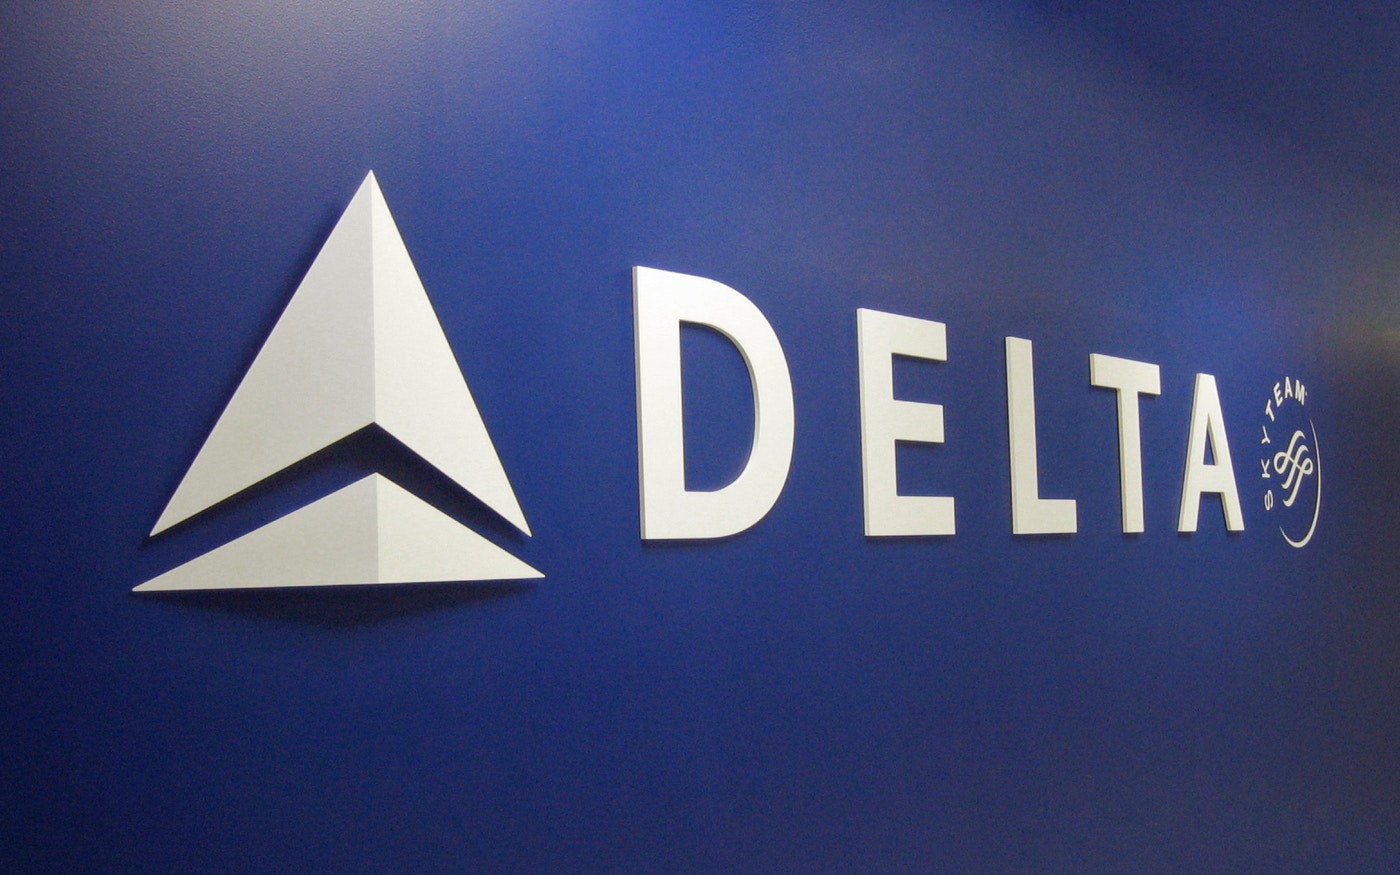 Delta Airlines new logo on wall